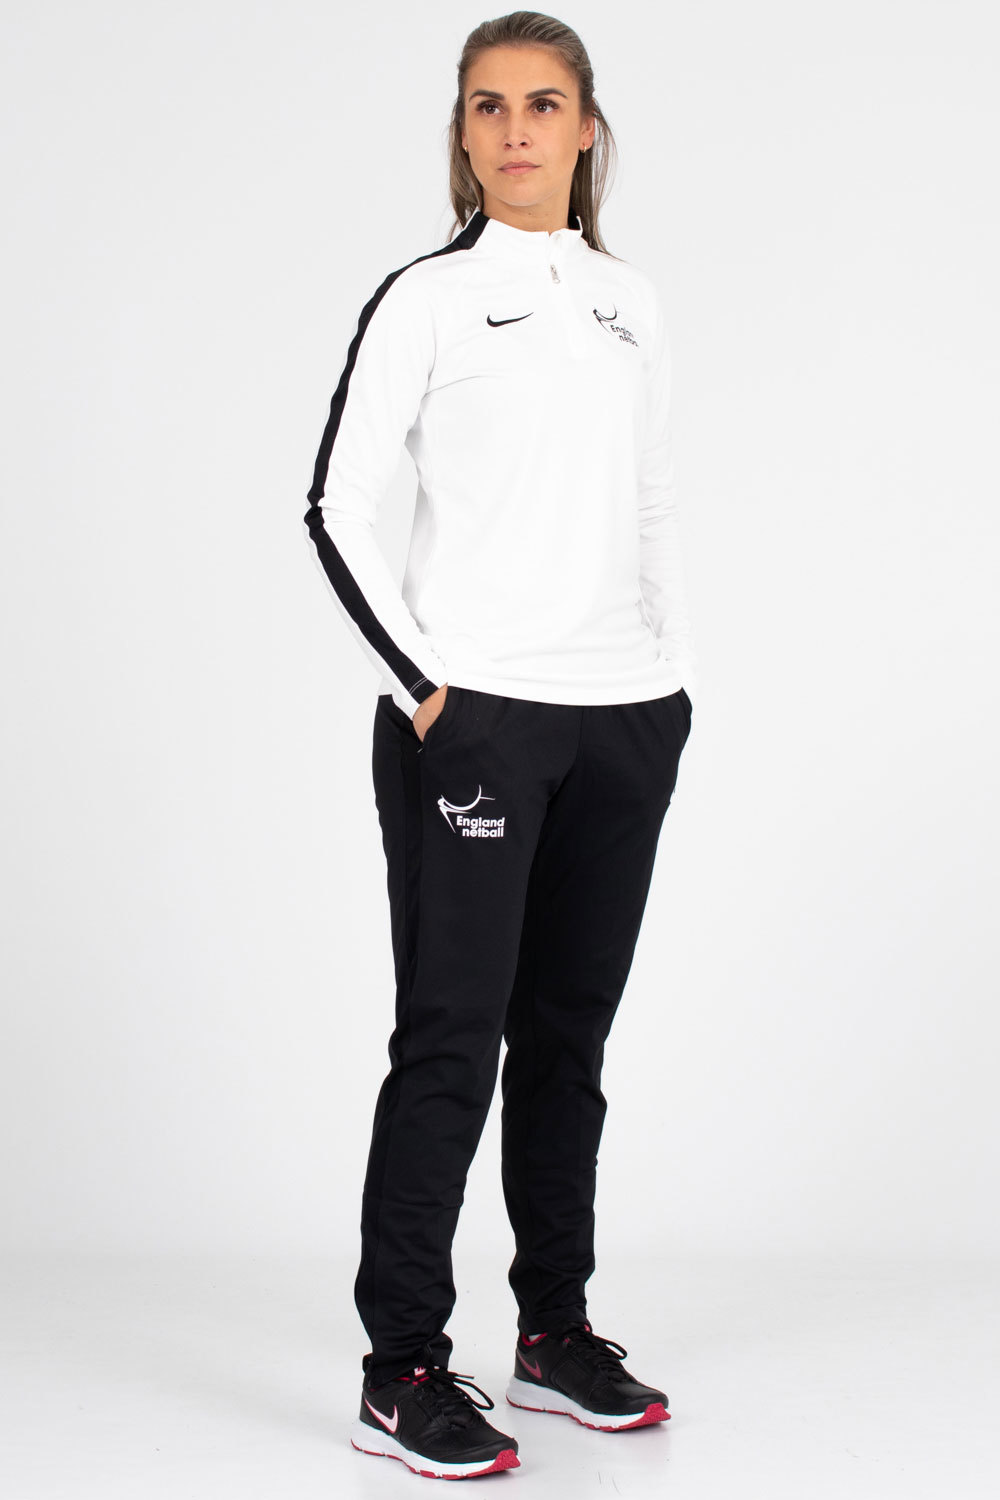 EN-Kitlocker Womens Team White Nike Academy 18 Tech Pant (w)